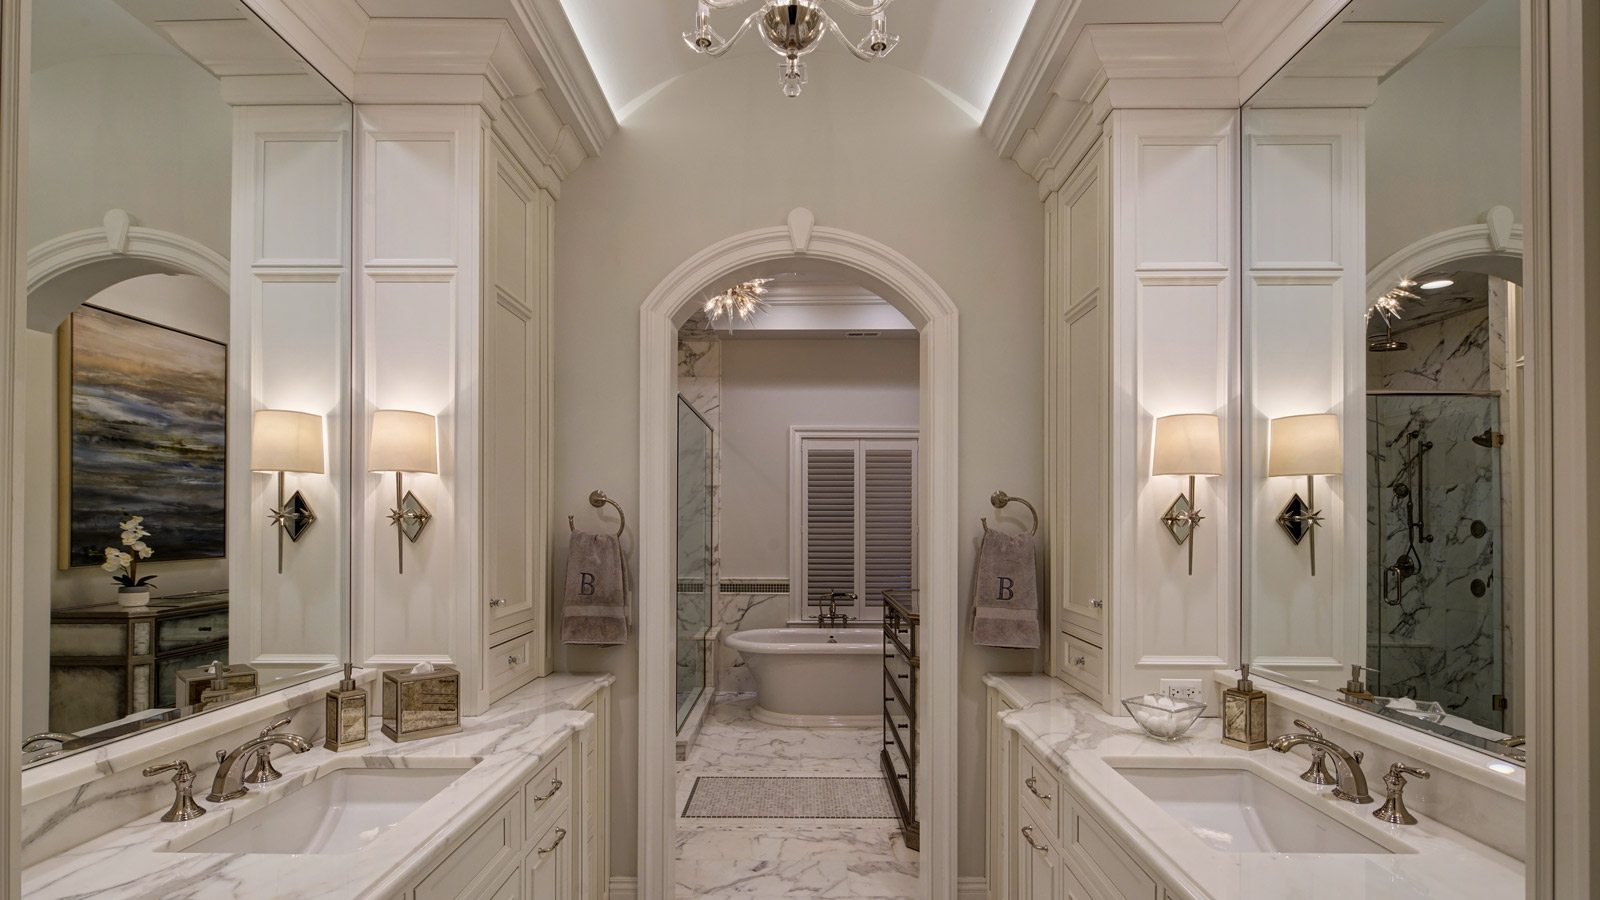 Bathroom Home Interior Design Interior Design Portfolio Kitchen And Bath Design Drury Design